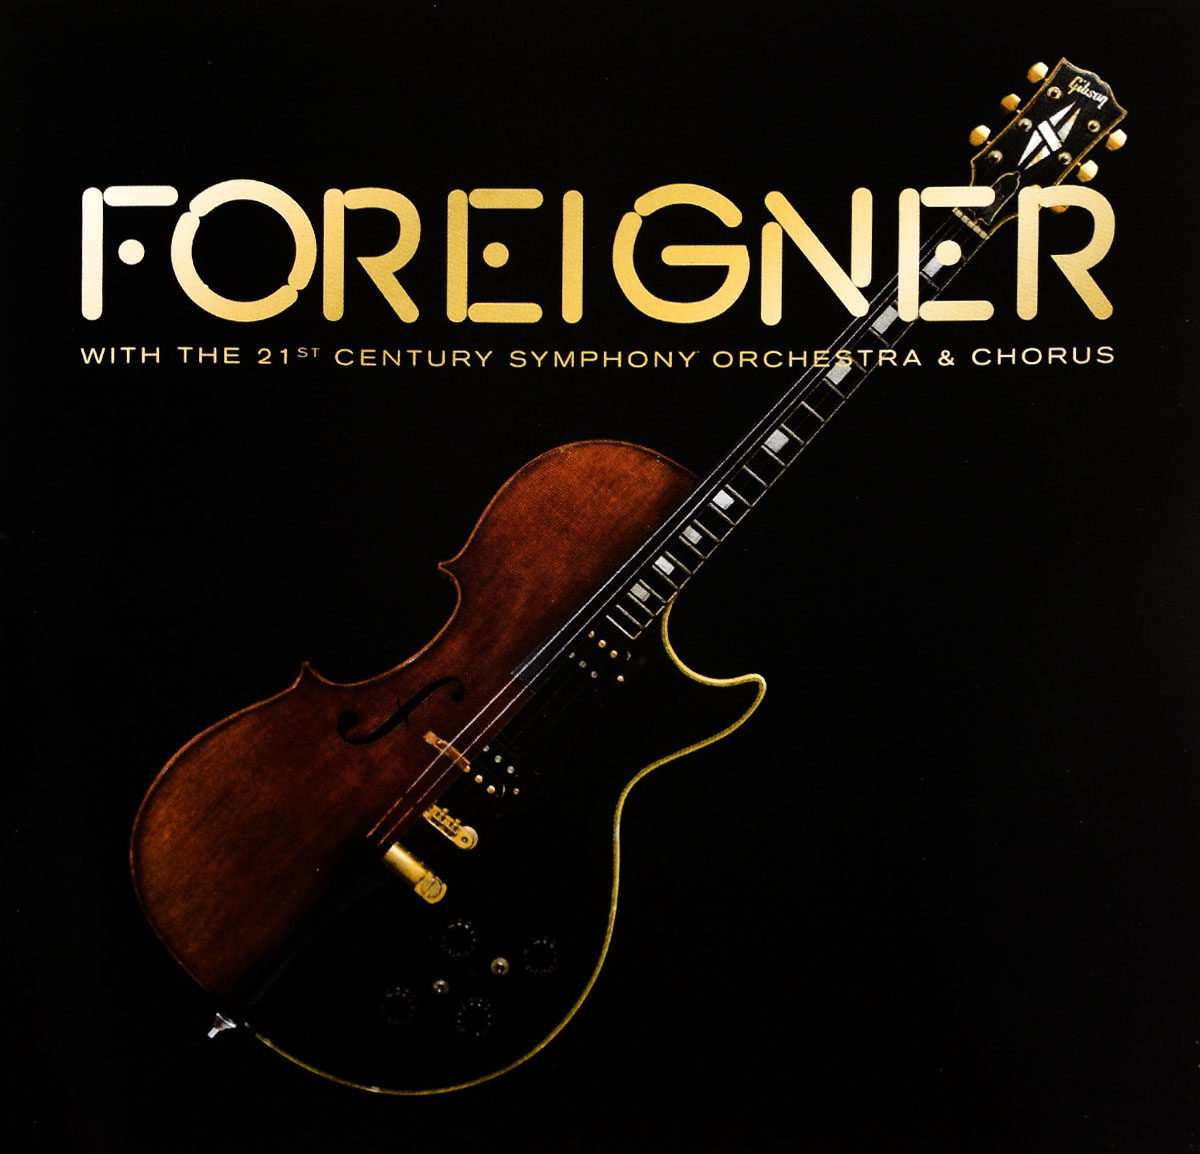 Foreigner Foreigner. With the 21st Century Symphony Orchestra & Chorus (CD) foreigner records